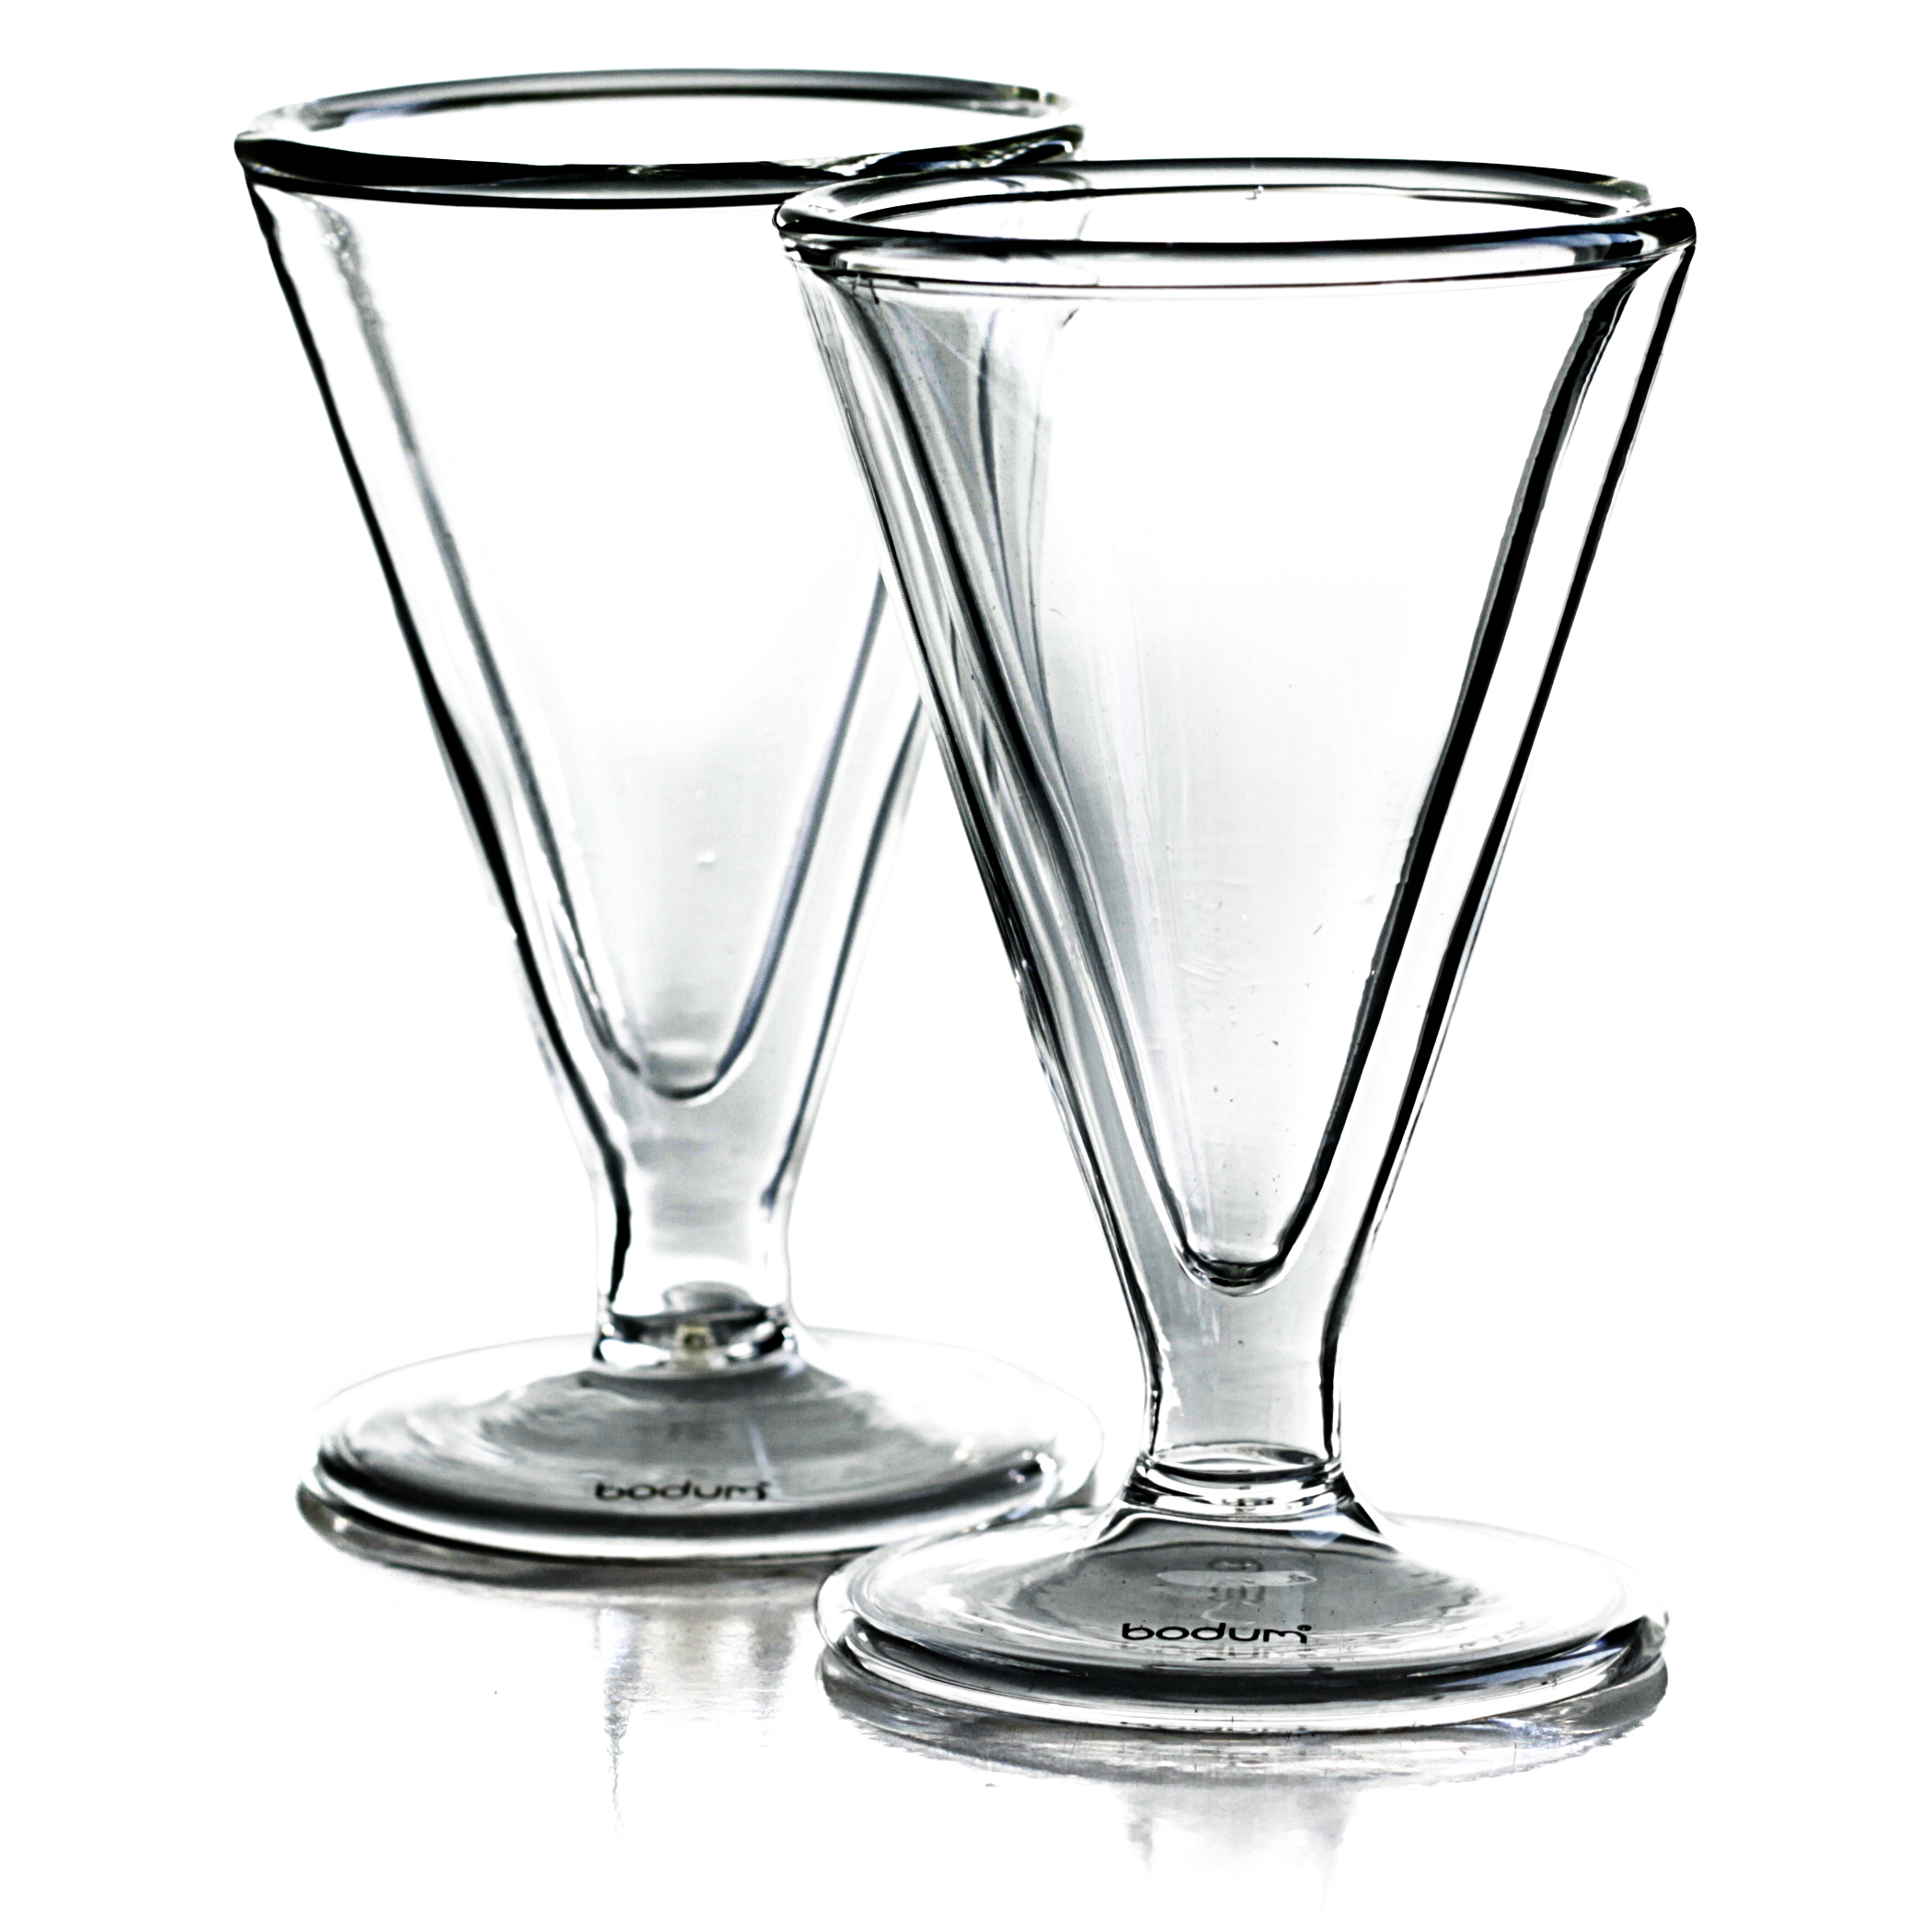 Bodum Manhattan Double Wall 1 Ounce Schnapps Glass, Set of 2